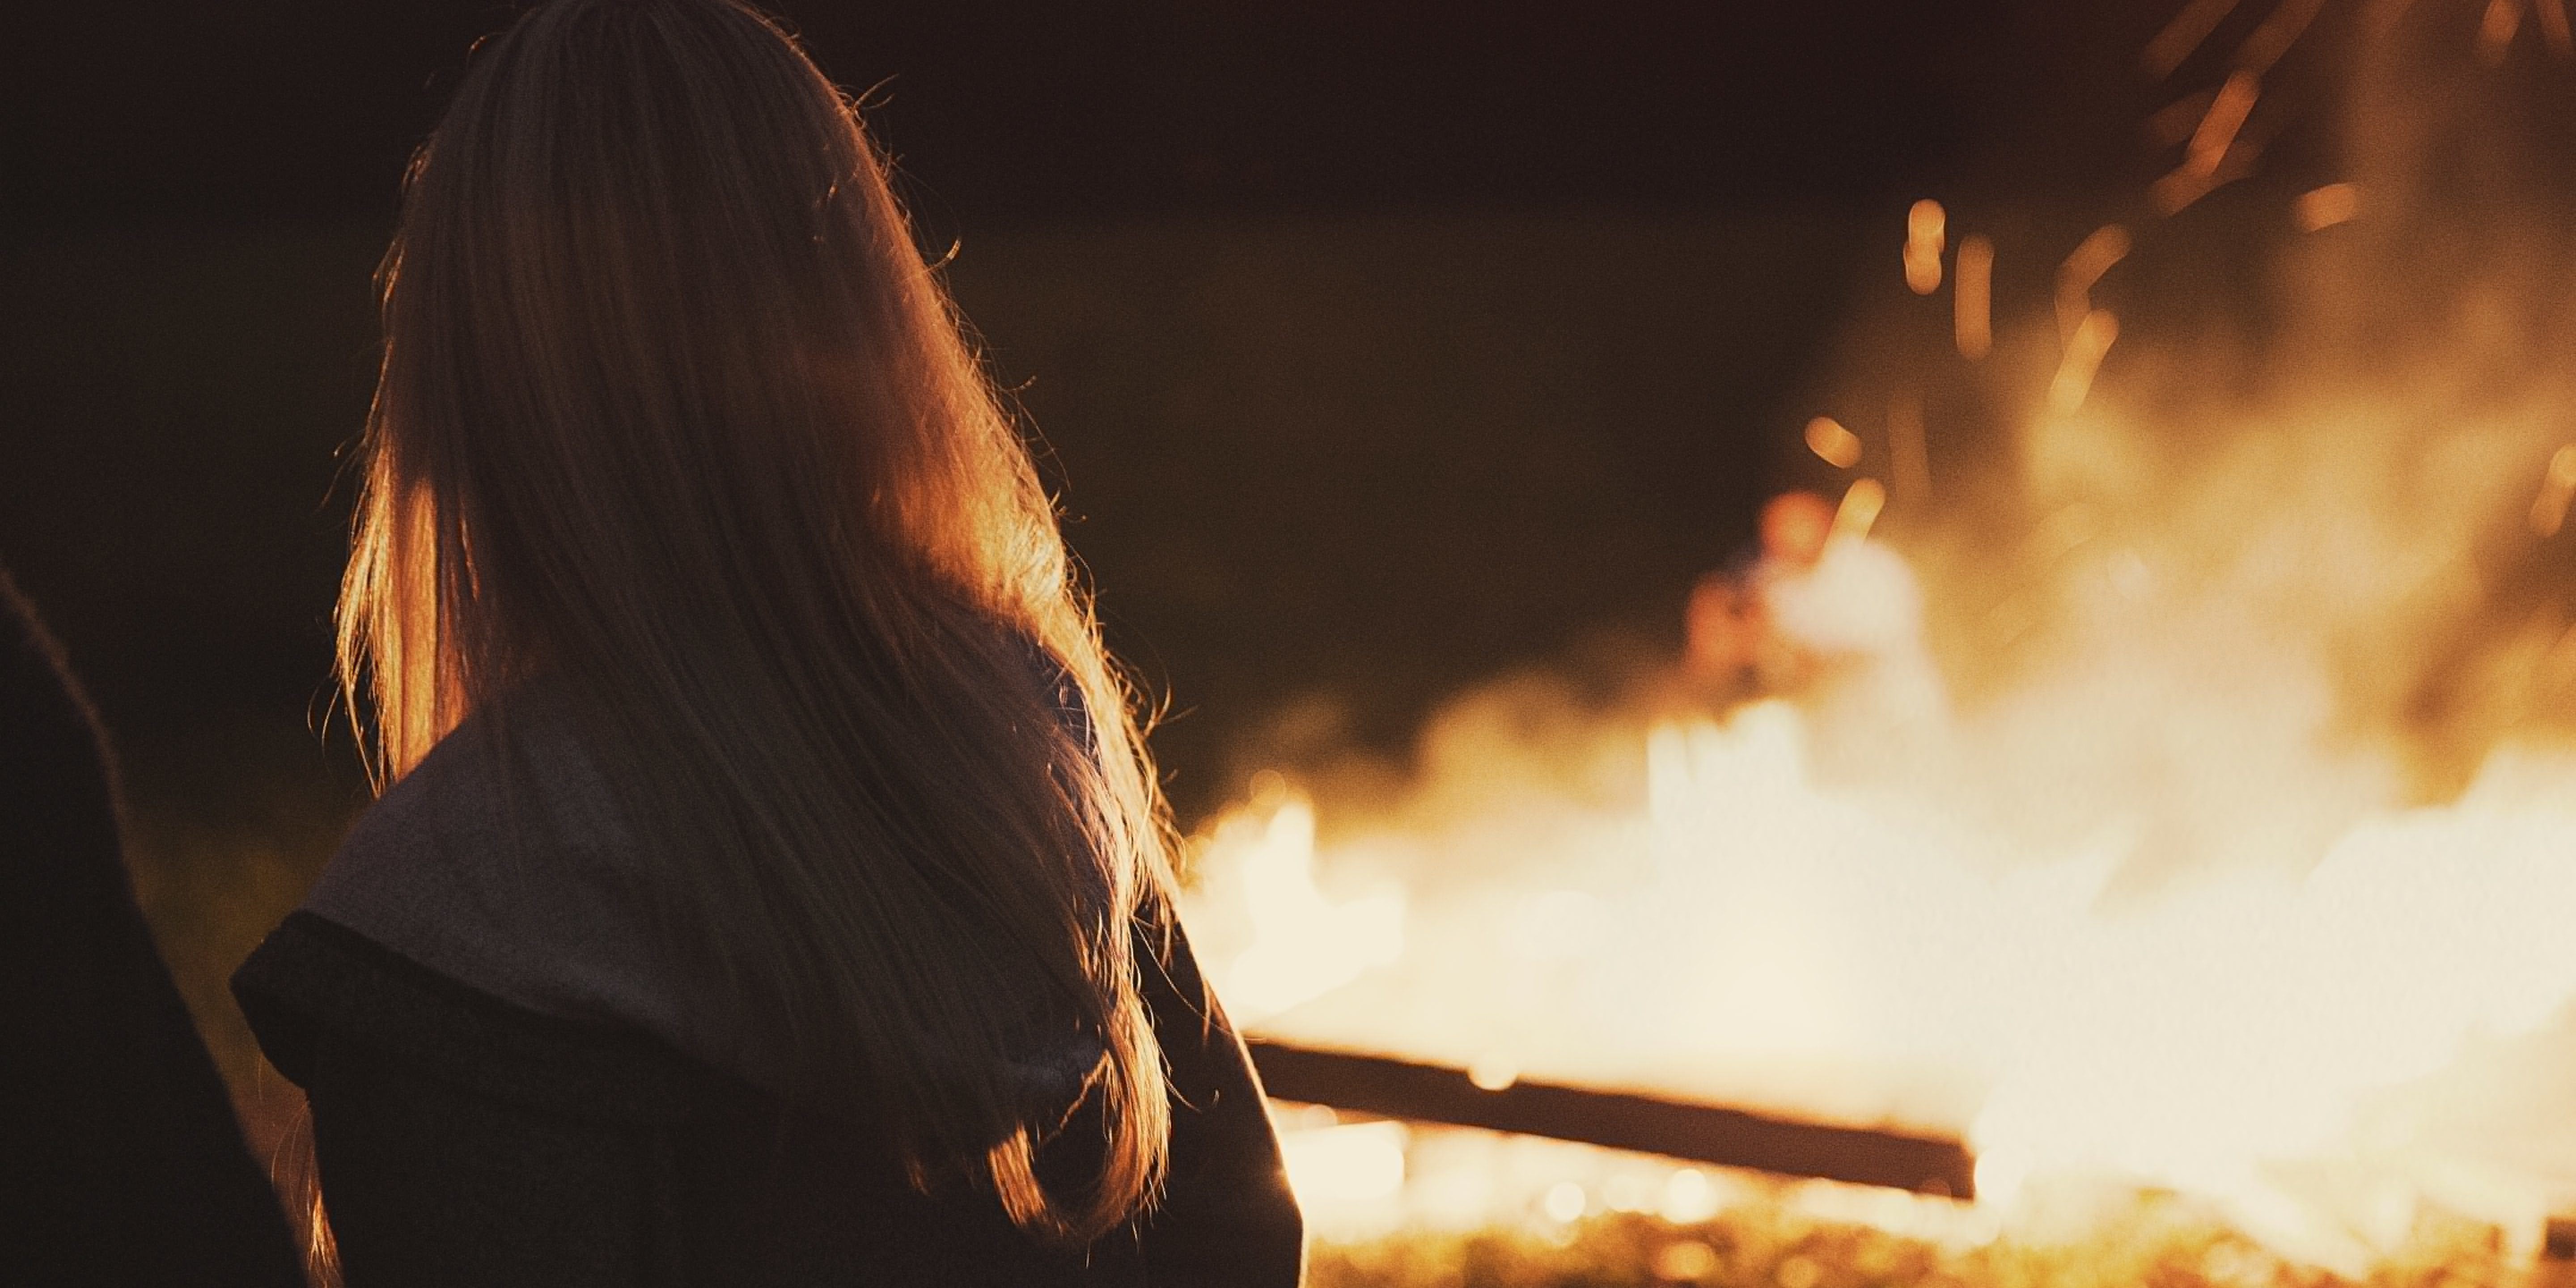 campfire-camping-fire-3967